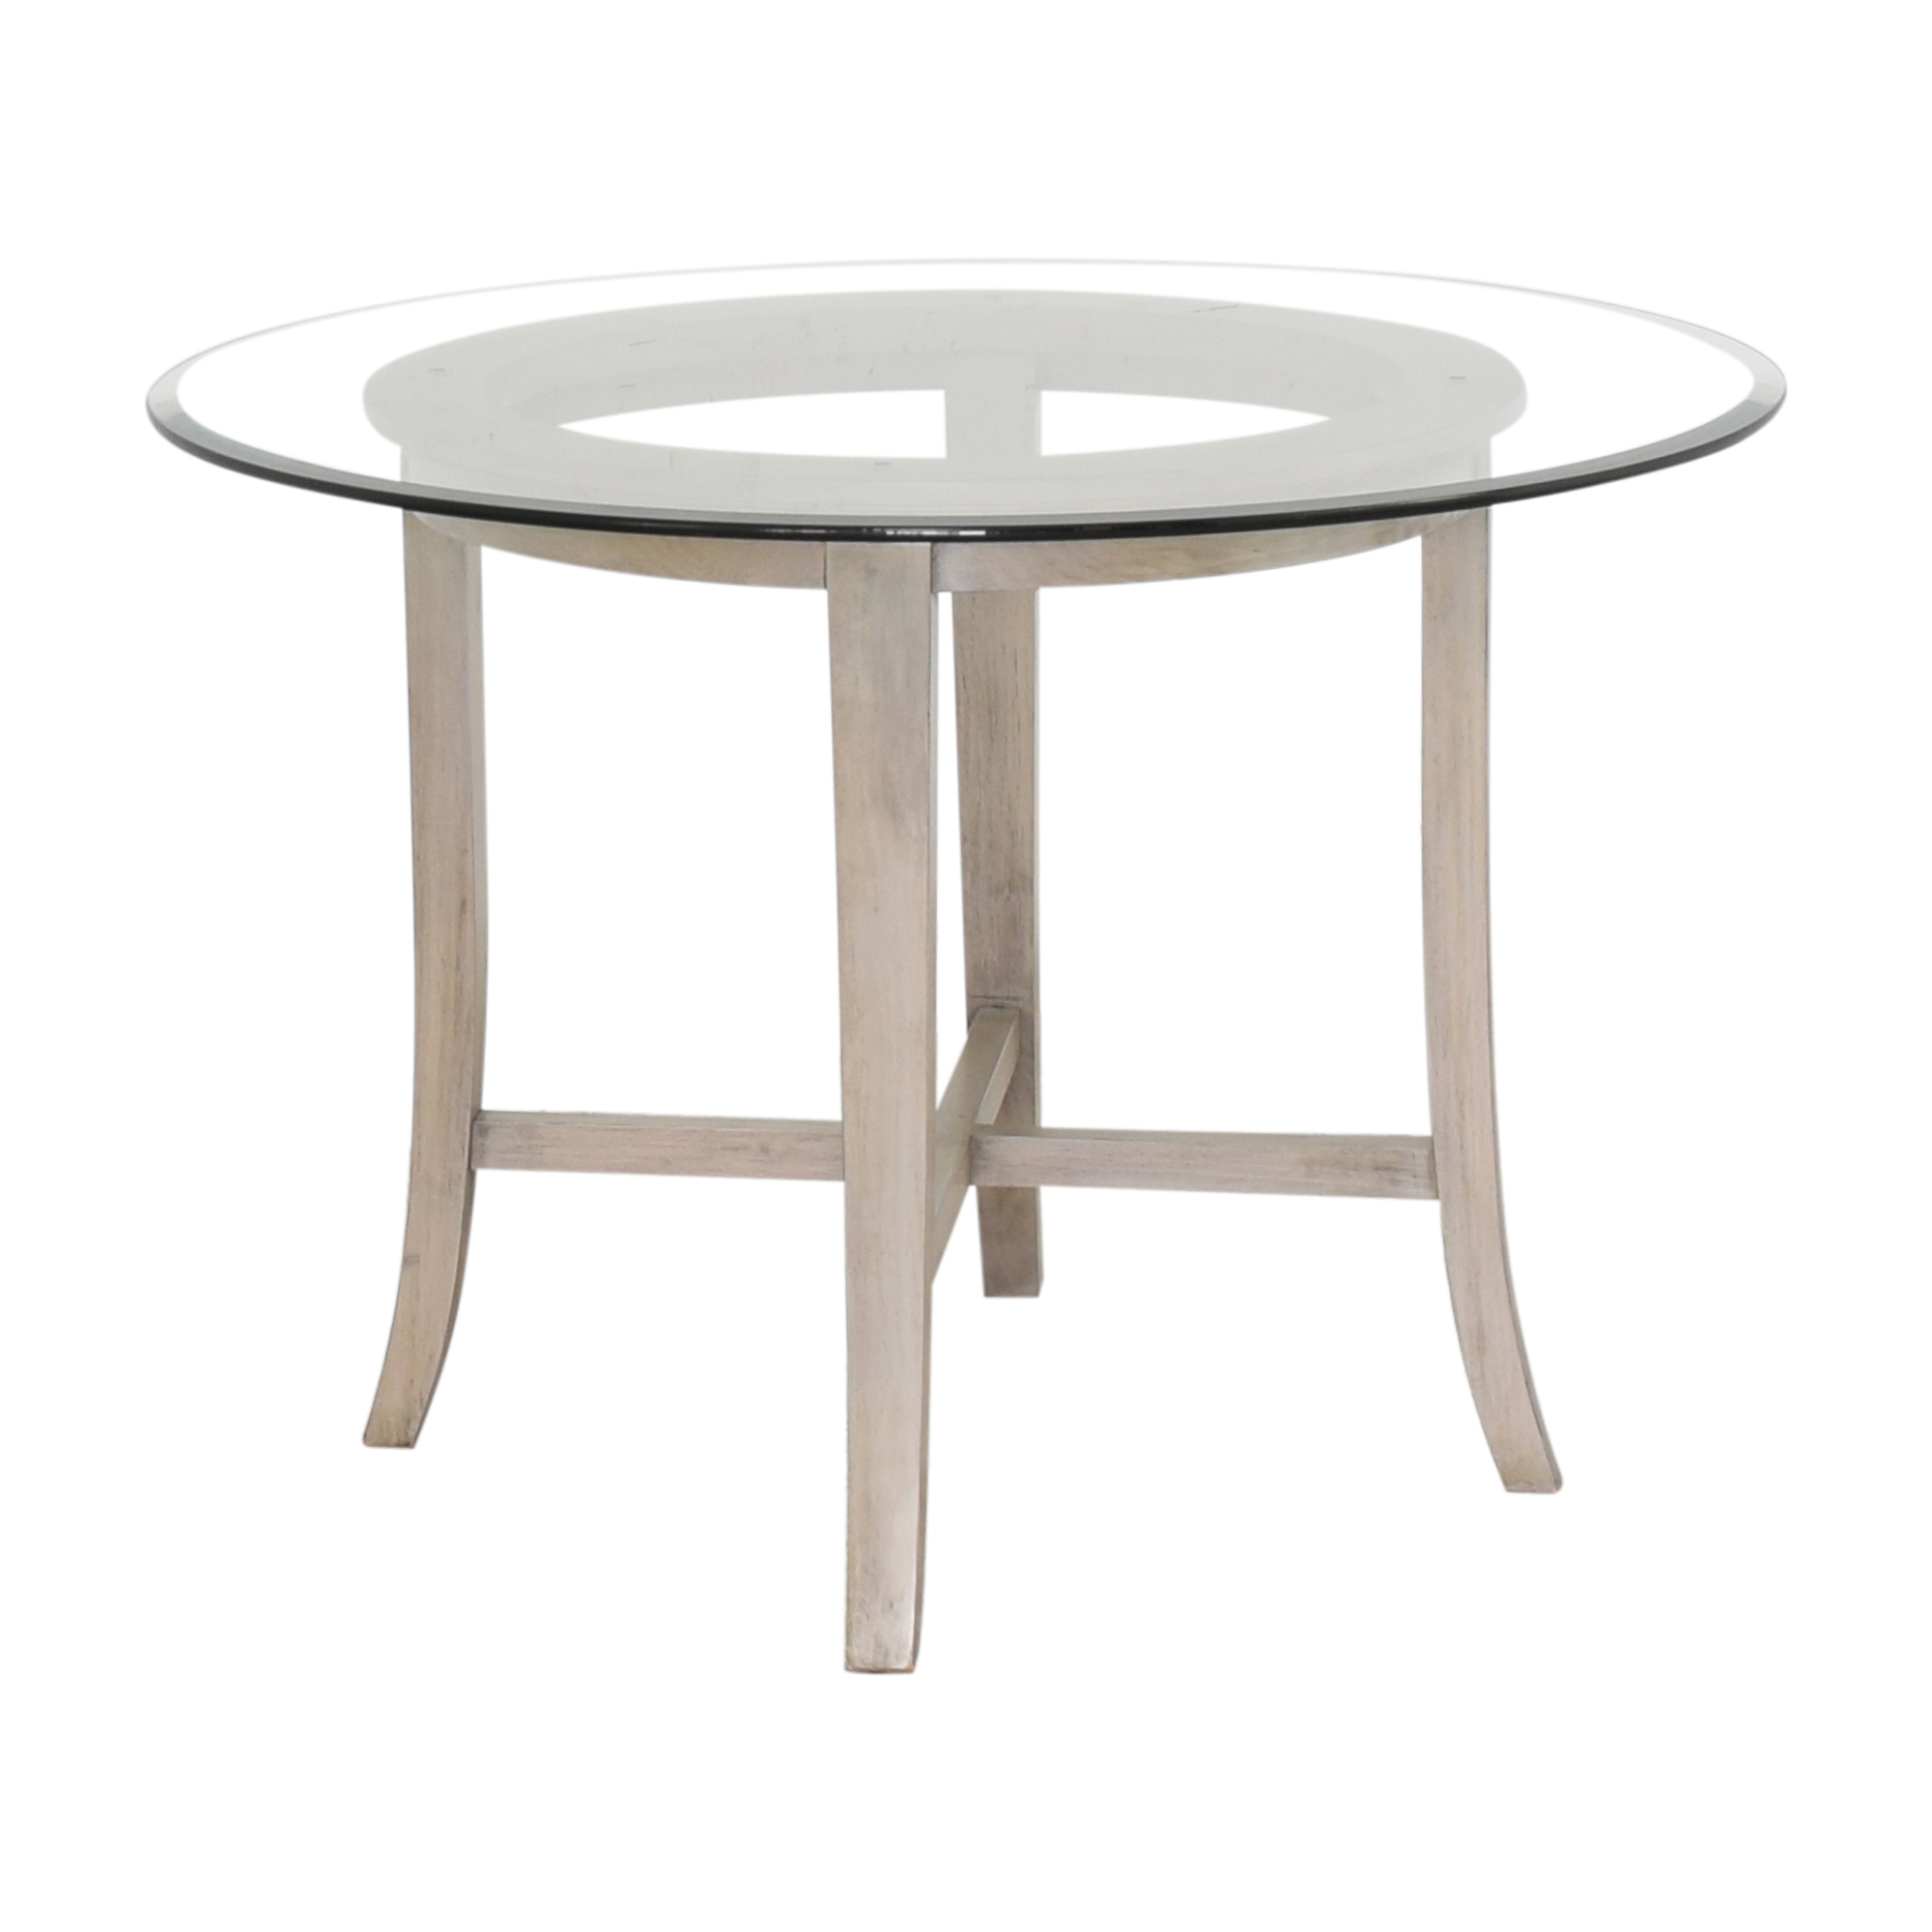 buy Crate & Barrel Halo Grey Round Dining Table with Glass Top Crate & Barrel Tables